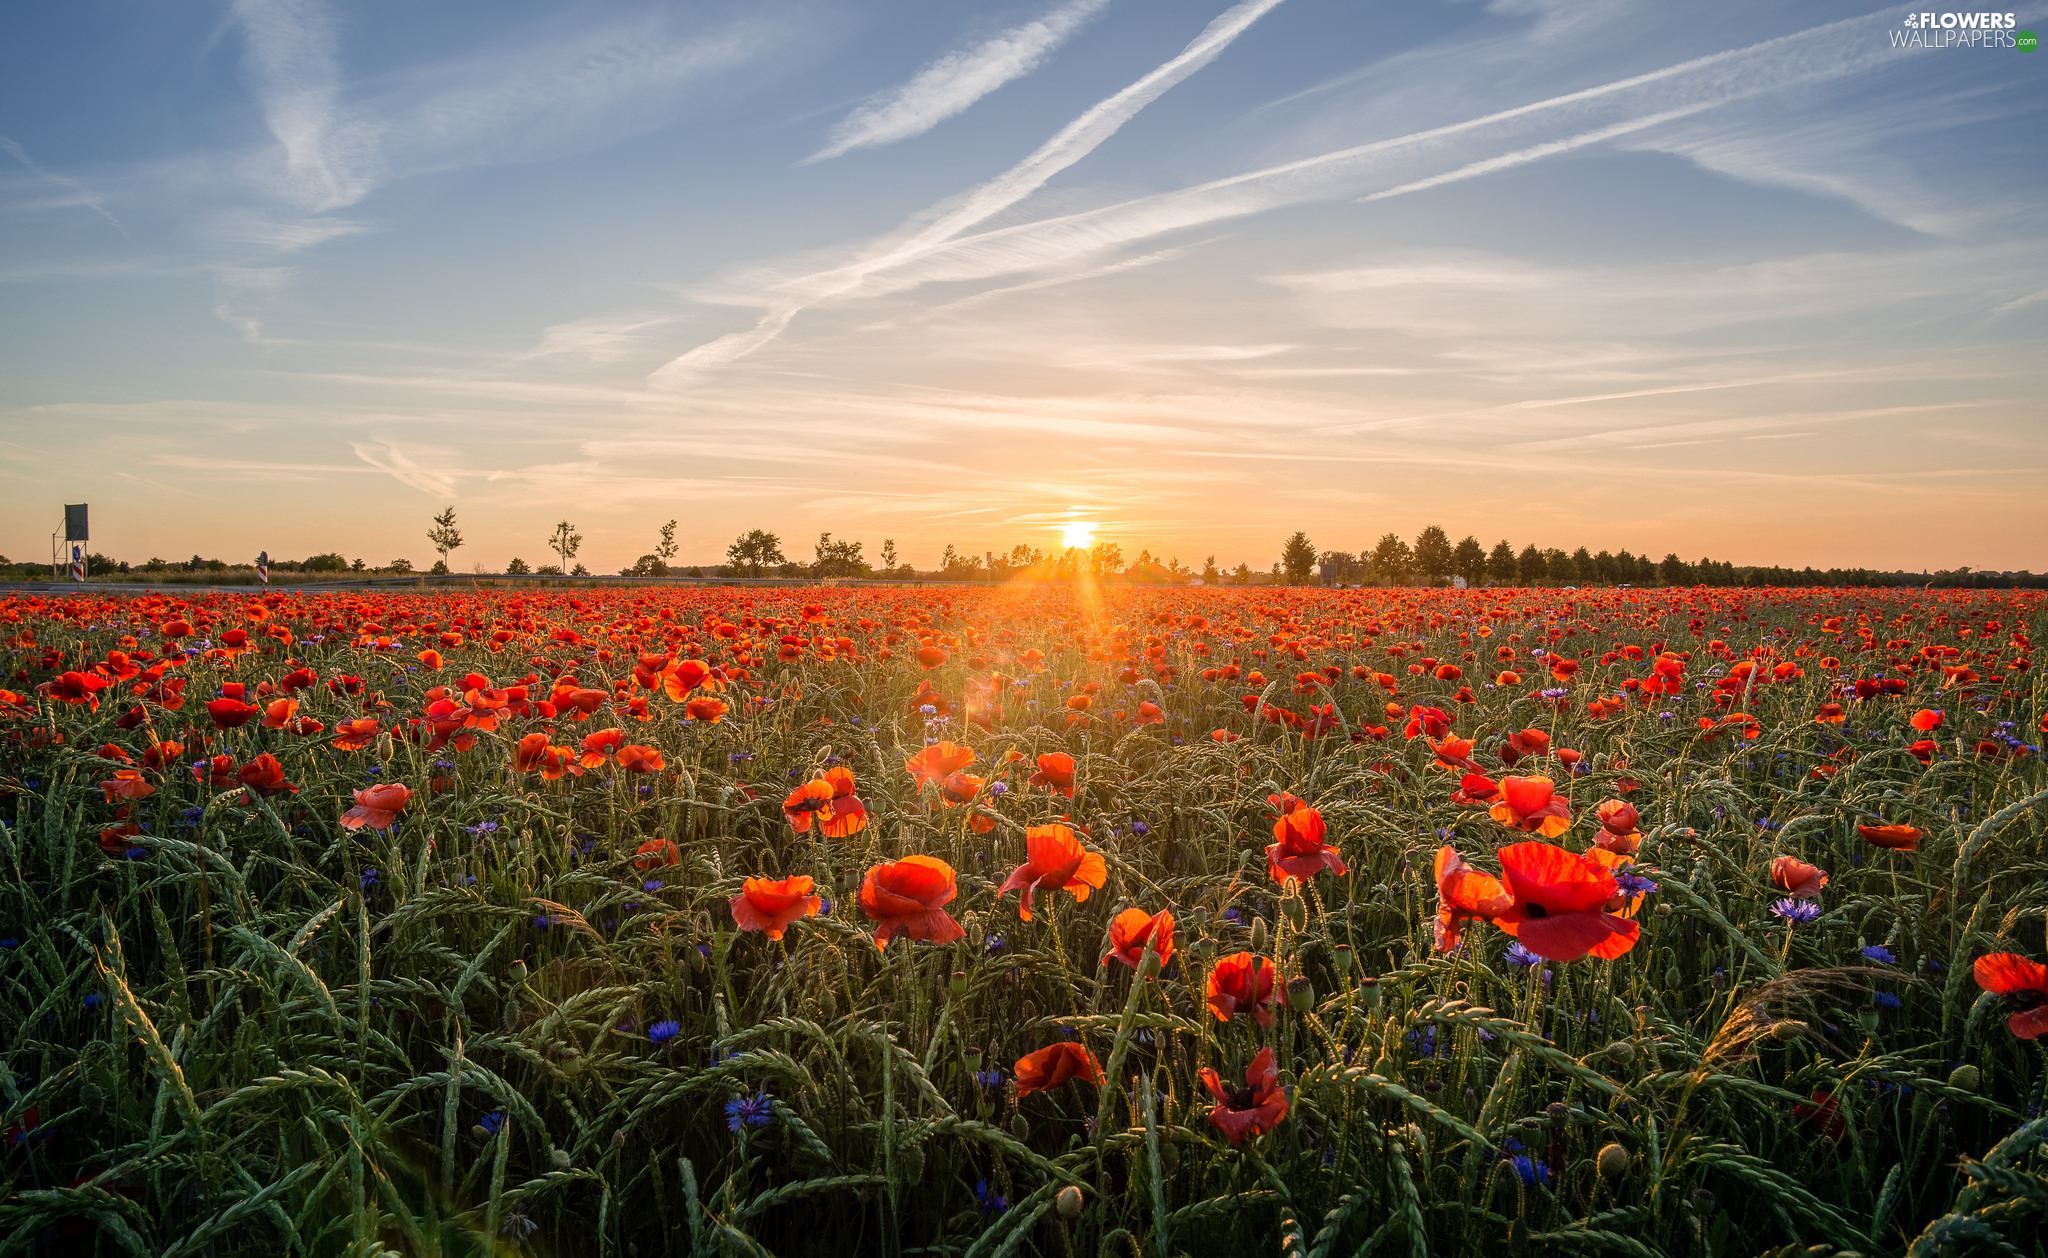 viewes, Sunrise, papavers, trees, Meadow